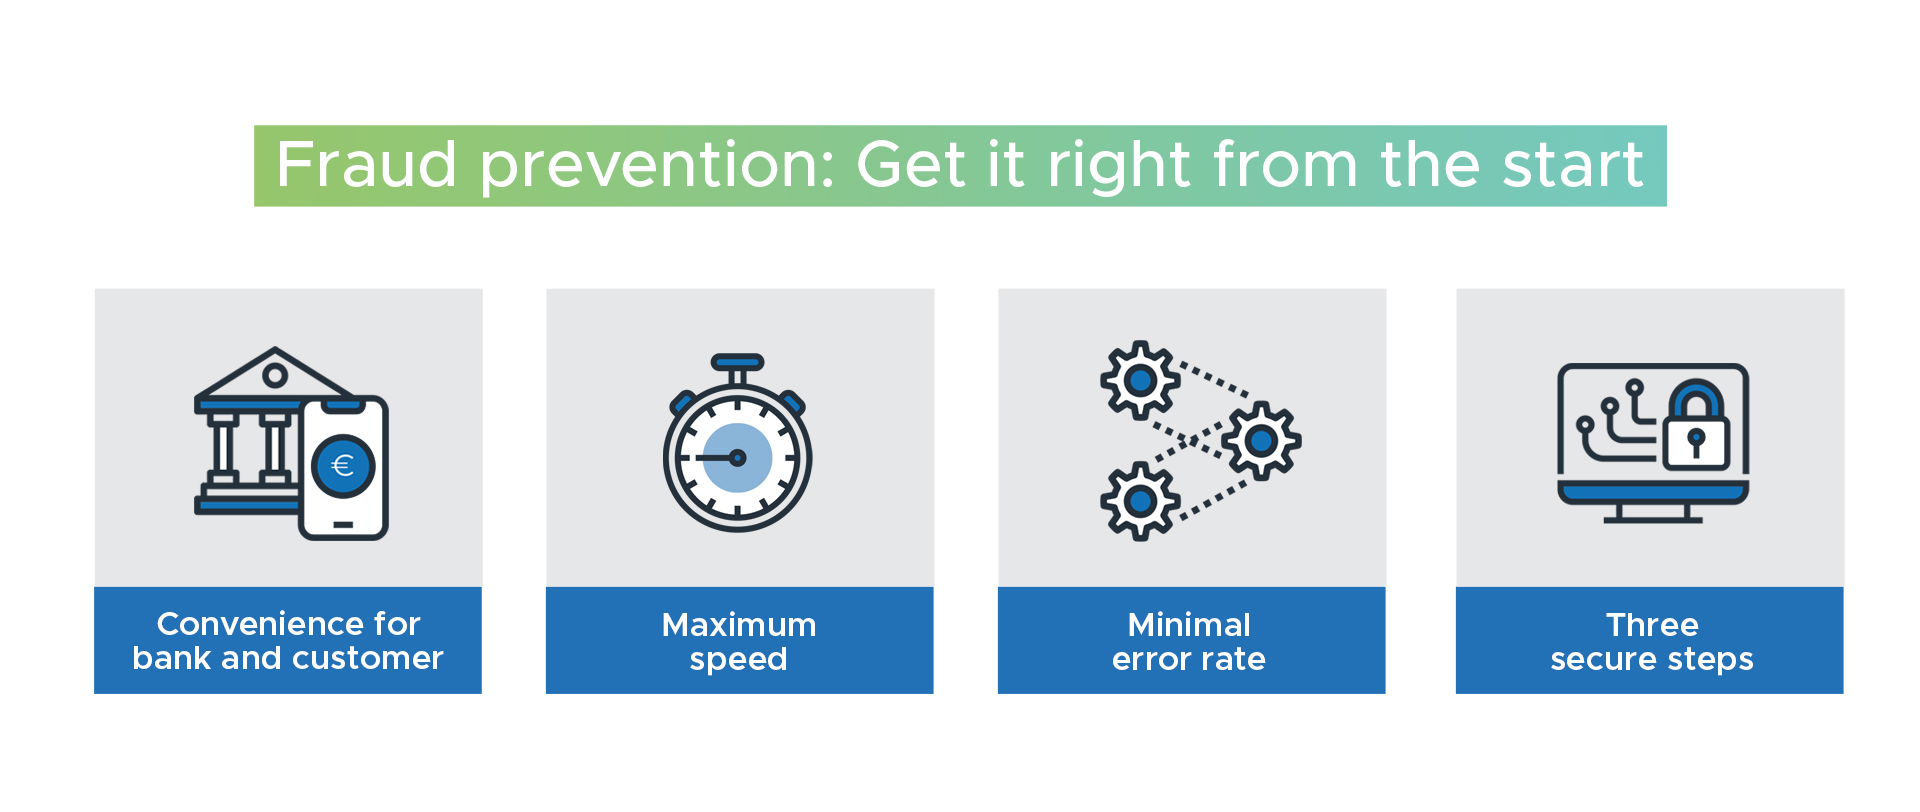 Fraud prevention: Get it right from the start